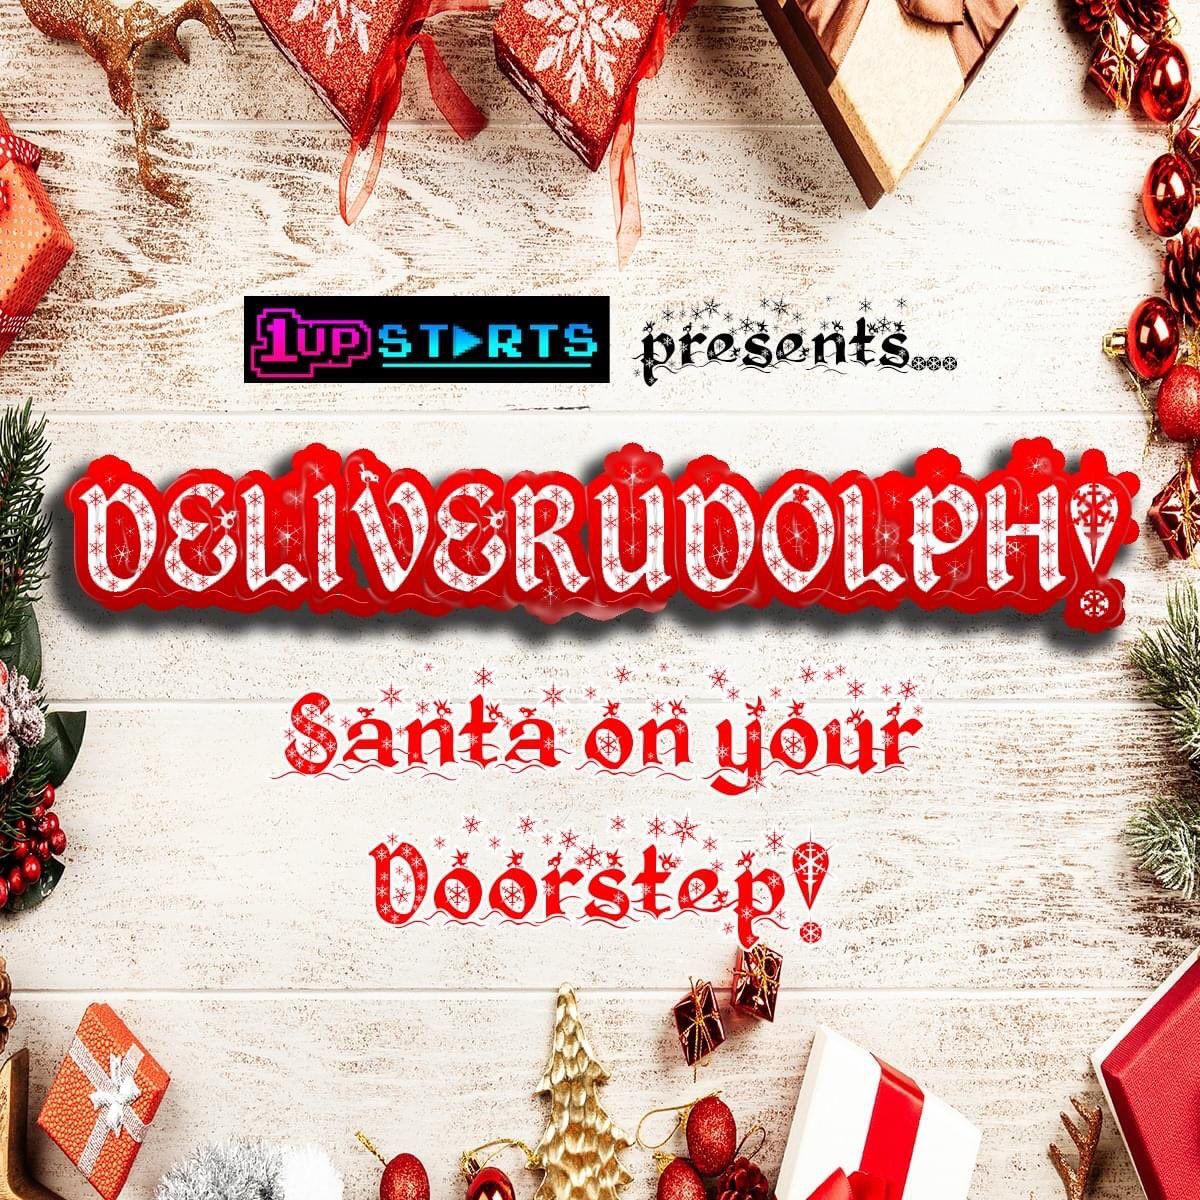 Christmassy image that says 1Upstarts presents DeliveRudolph